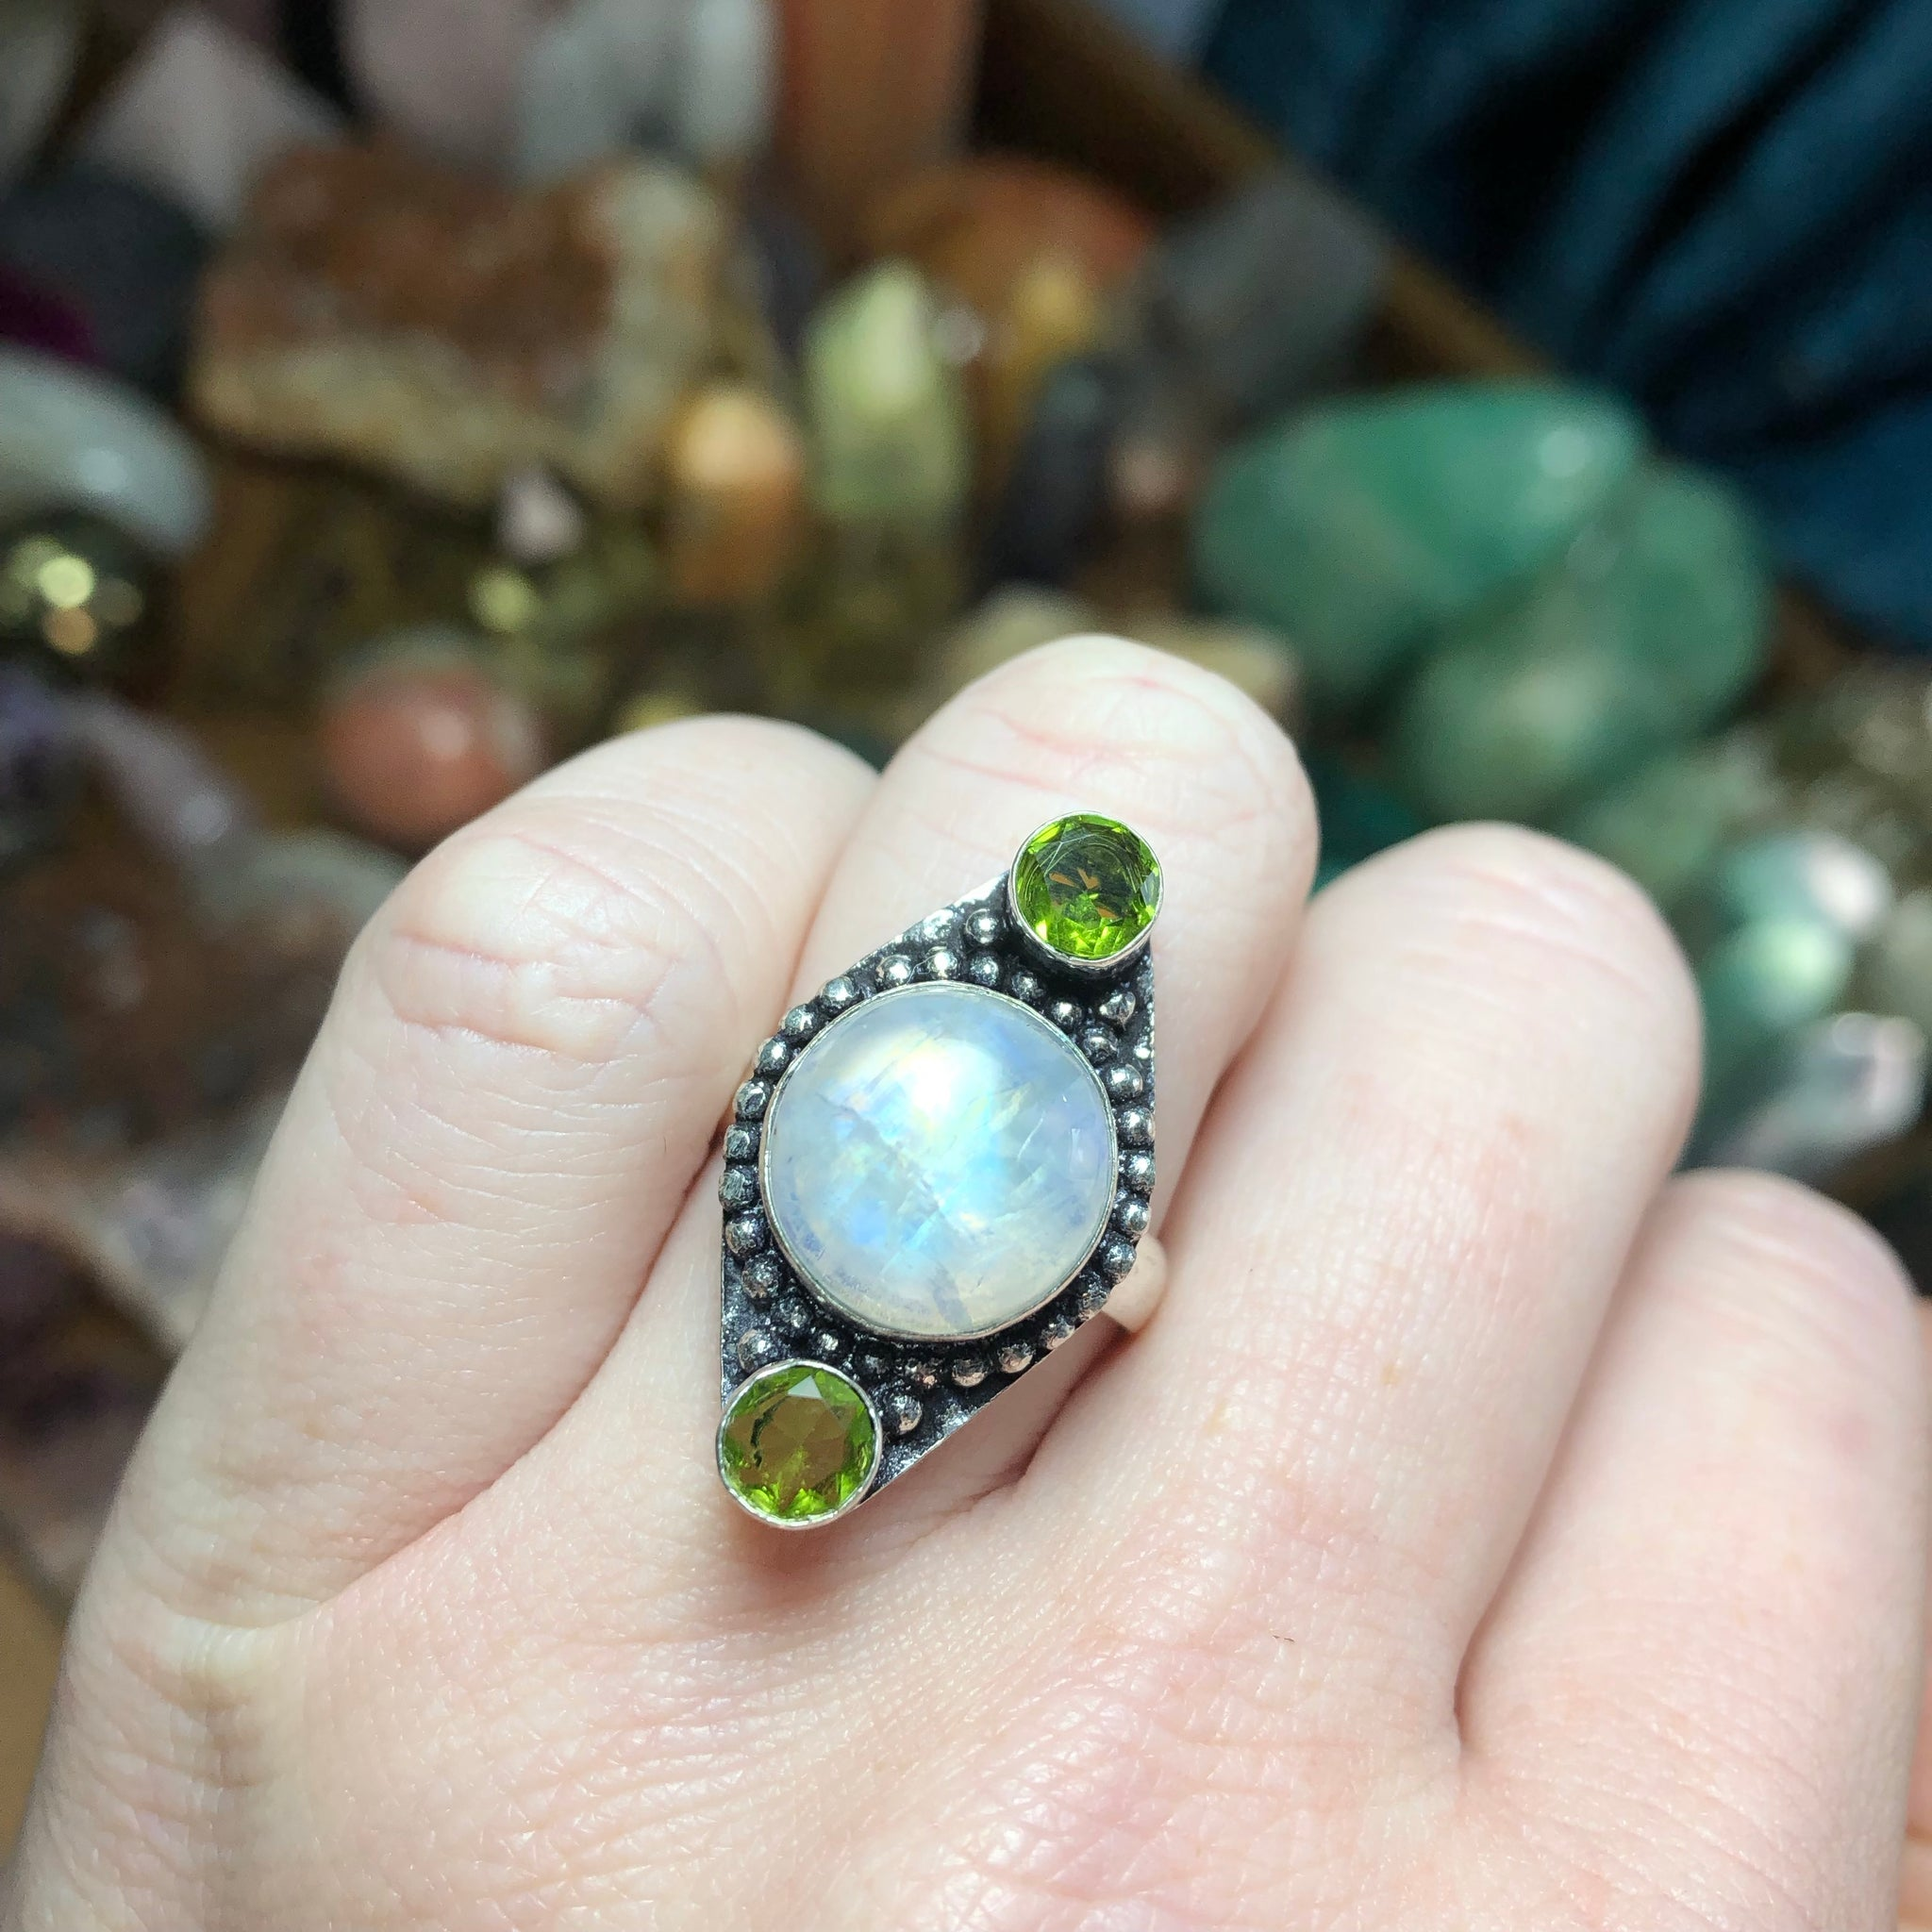 Rainbow Moonstone & Peridot Ring Size 8 Sterling Silver - The Whimsy Crystal Shop